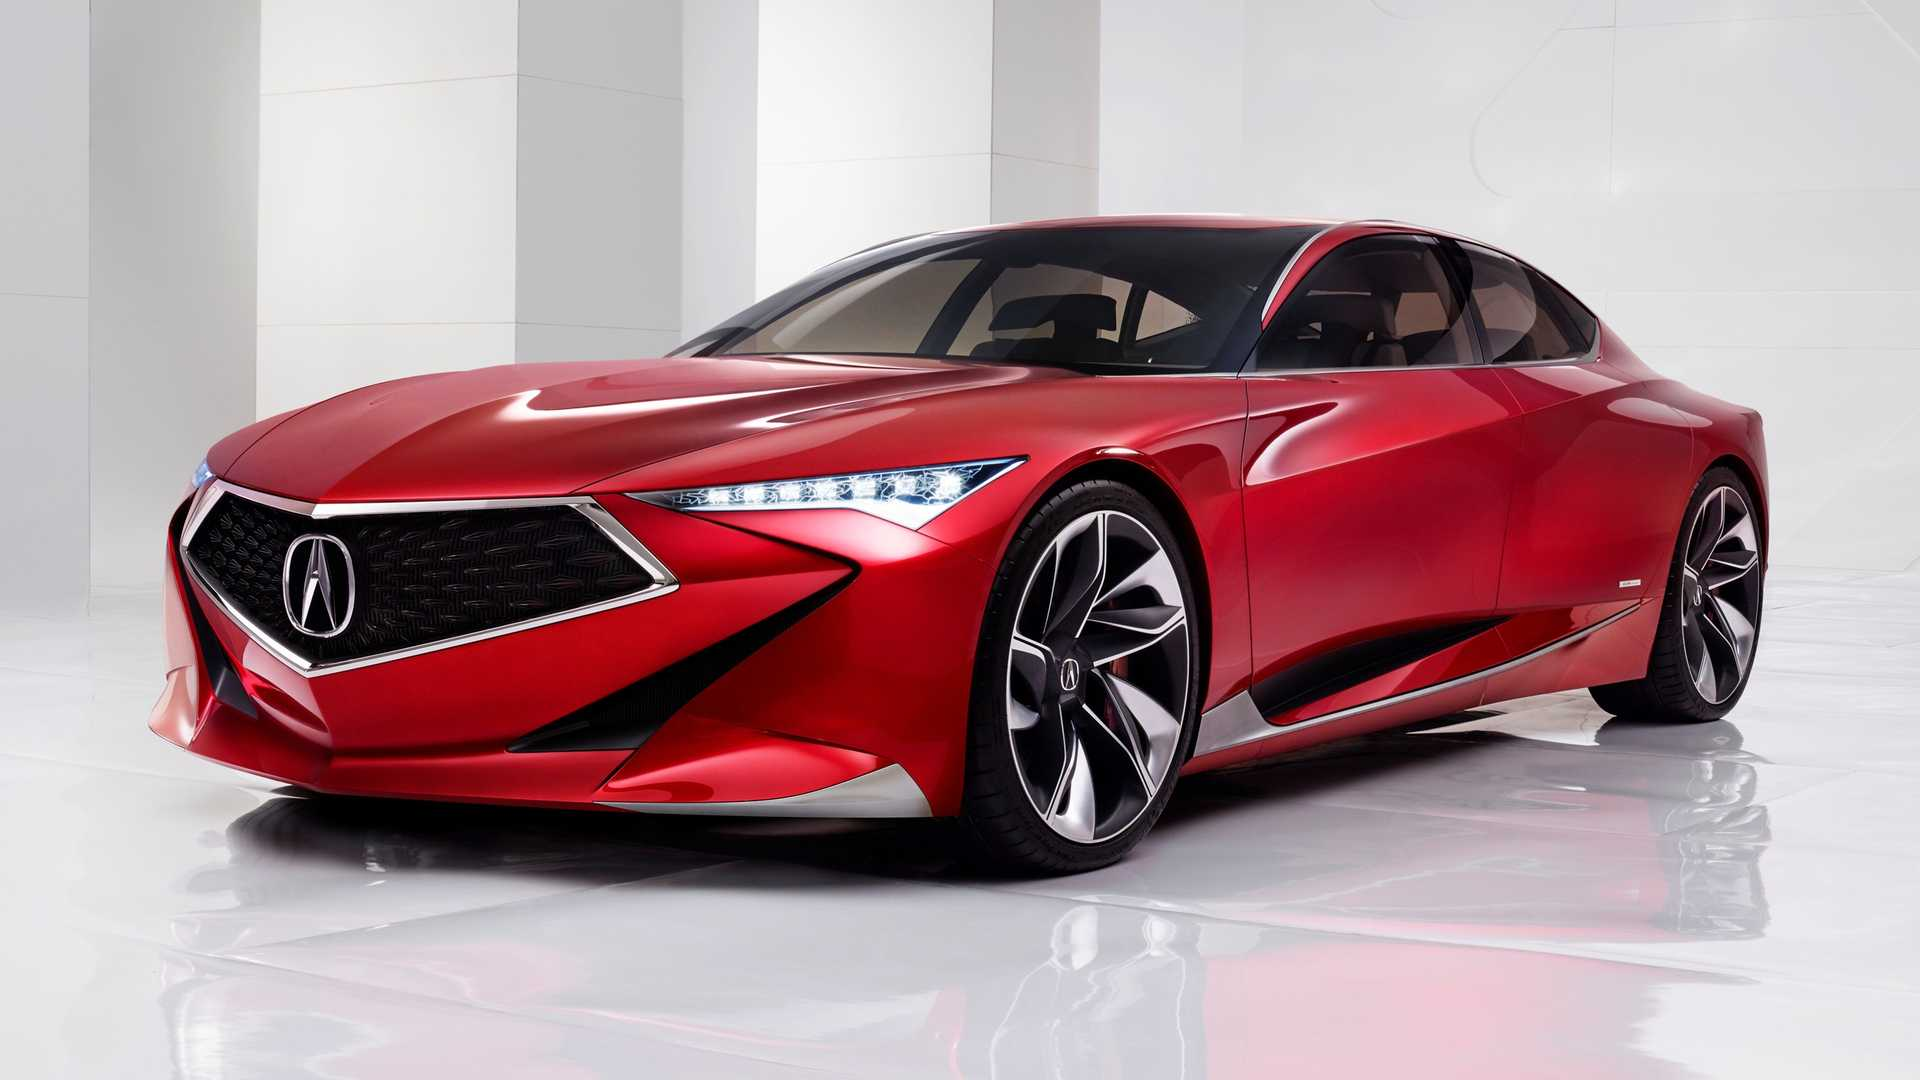 62 Best Review 2020 Acura Pebble Beach History with 2020 Acura Pebble Beach